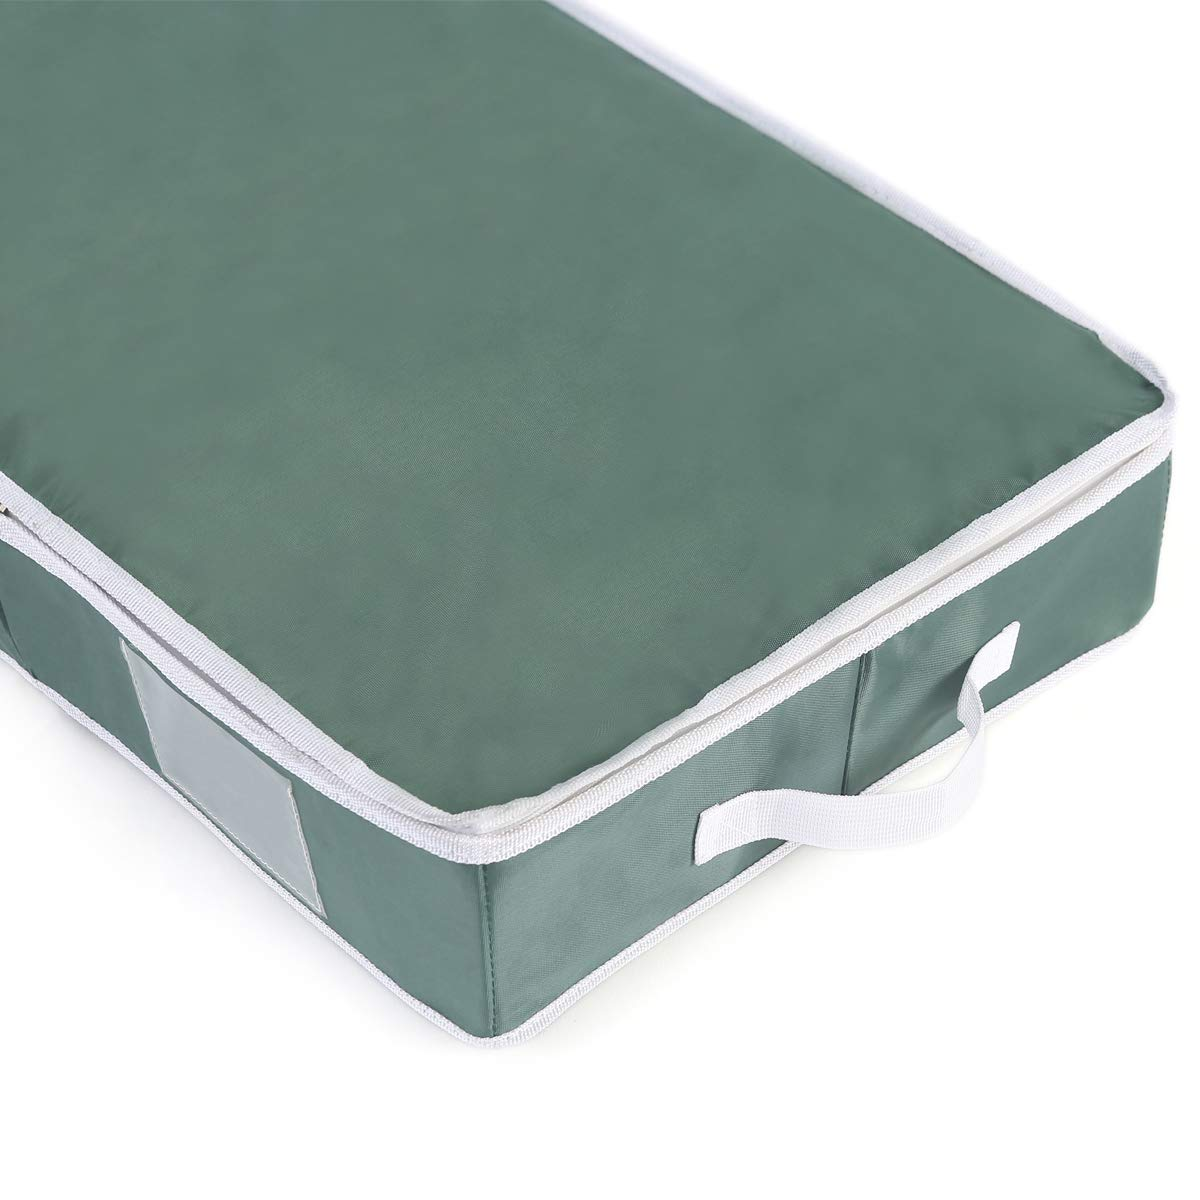 Holiday 42 Structured Wrap Storage Organizer,Under-Bed Storage Container for Holiday Storage of Gift Bags,Green VHO-009 Vencer